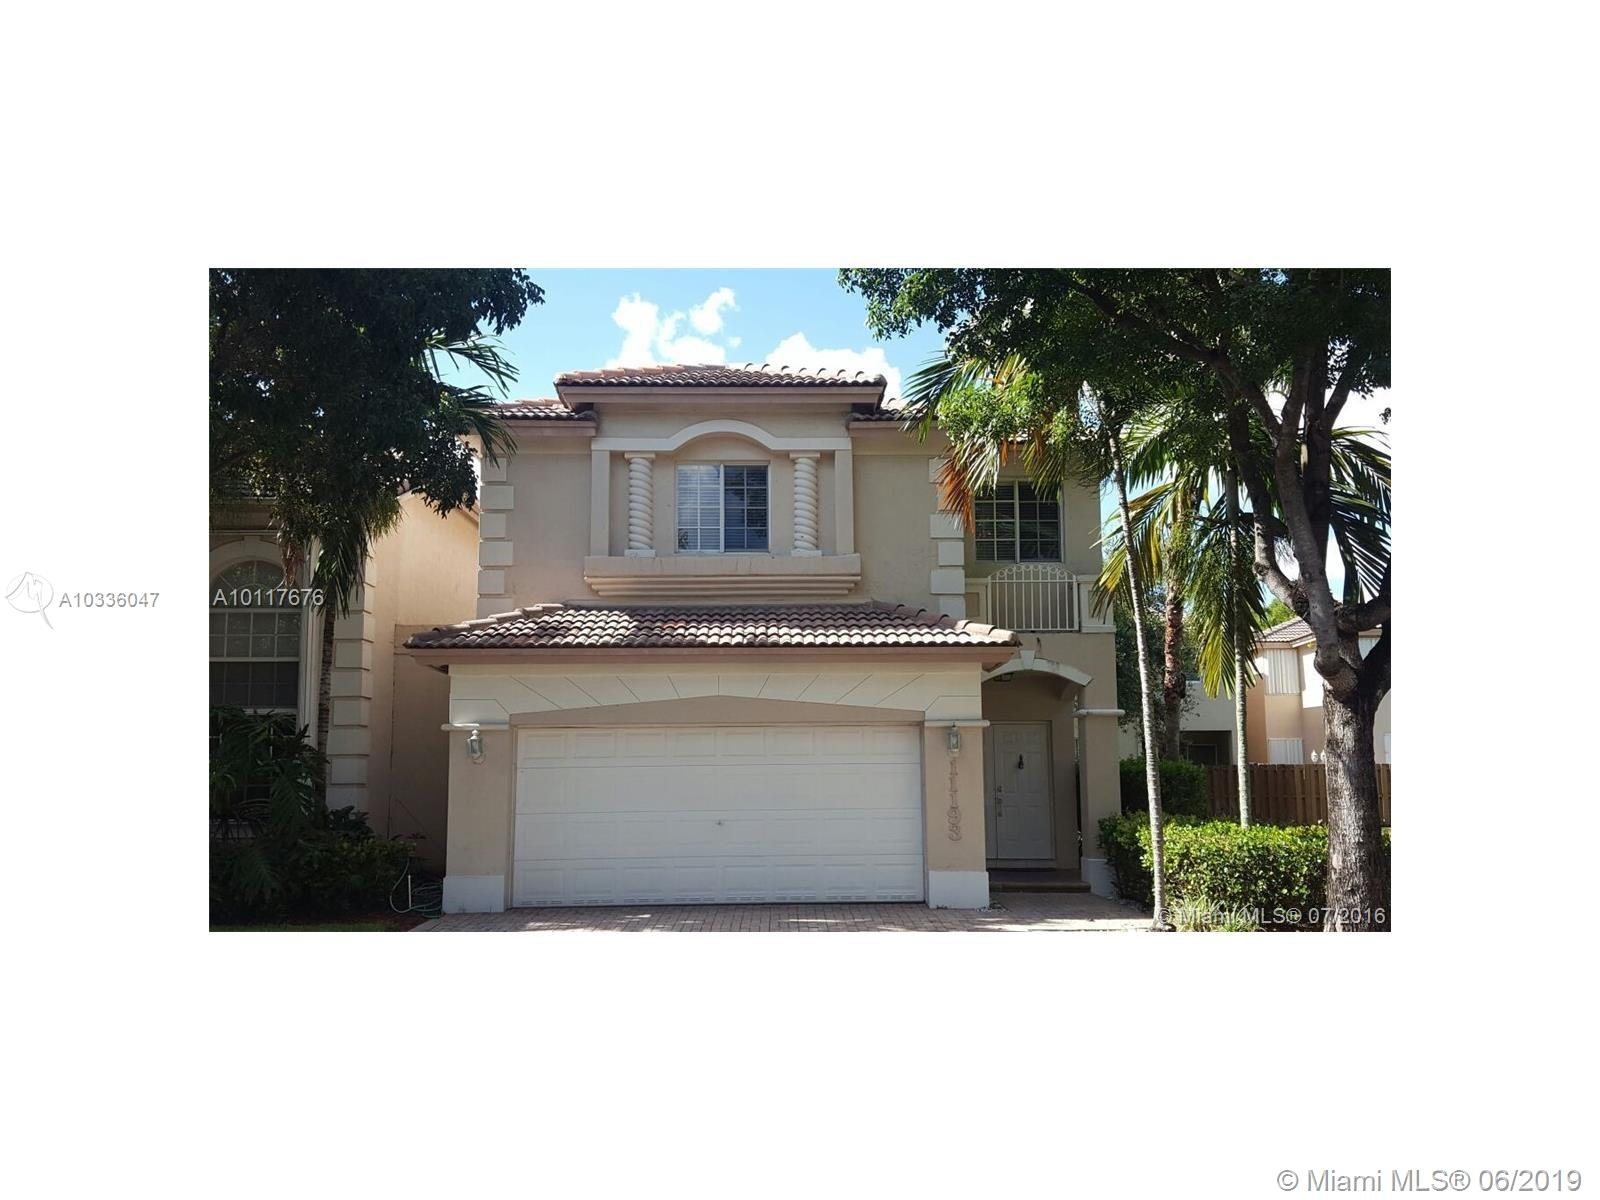 11193 Nw 73rd St, Doral FL, 33178